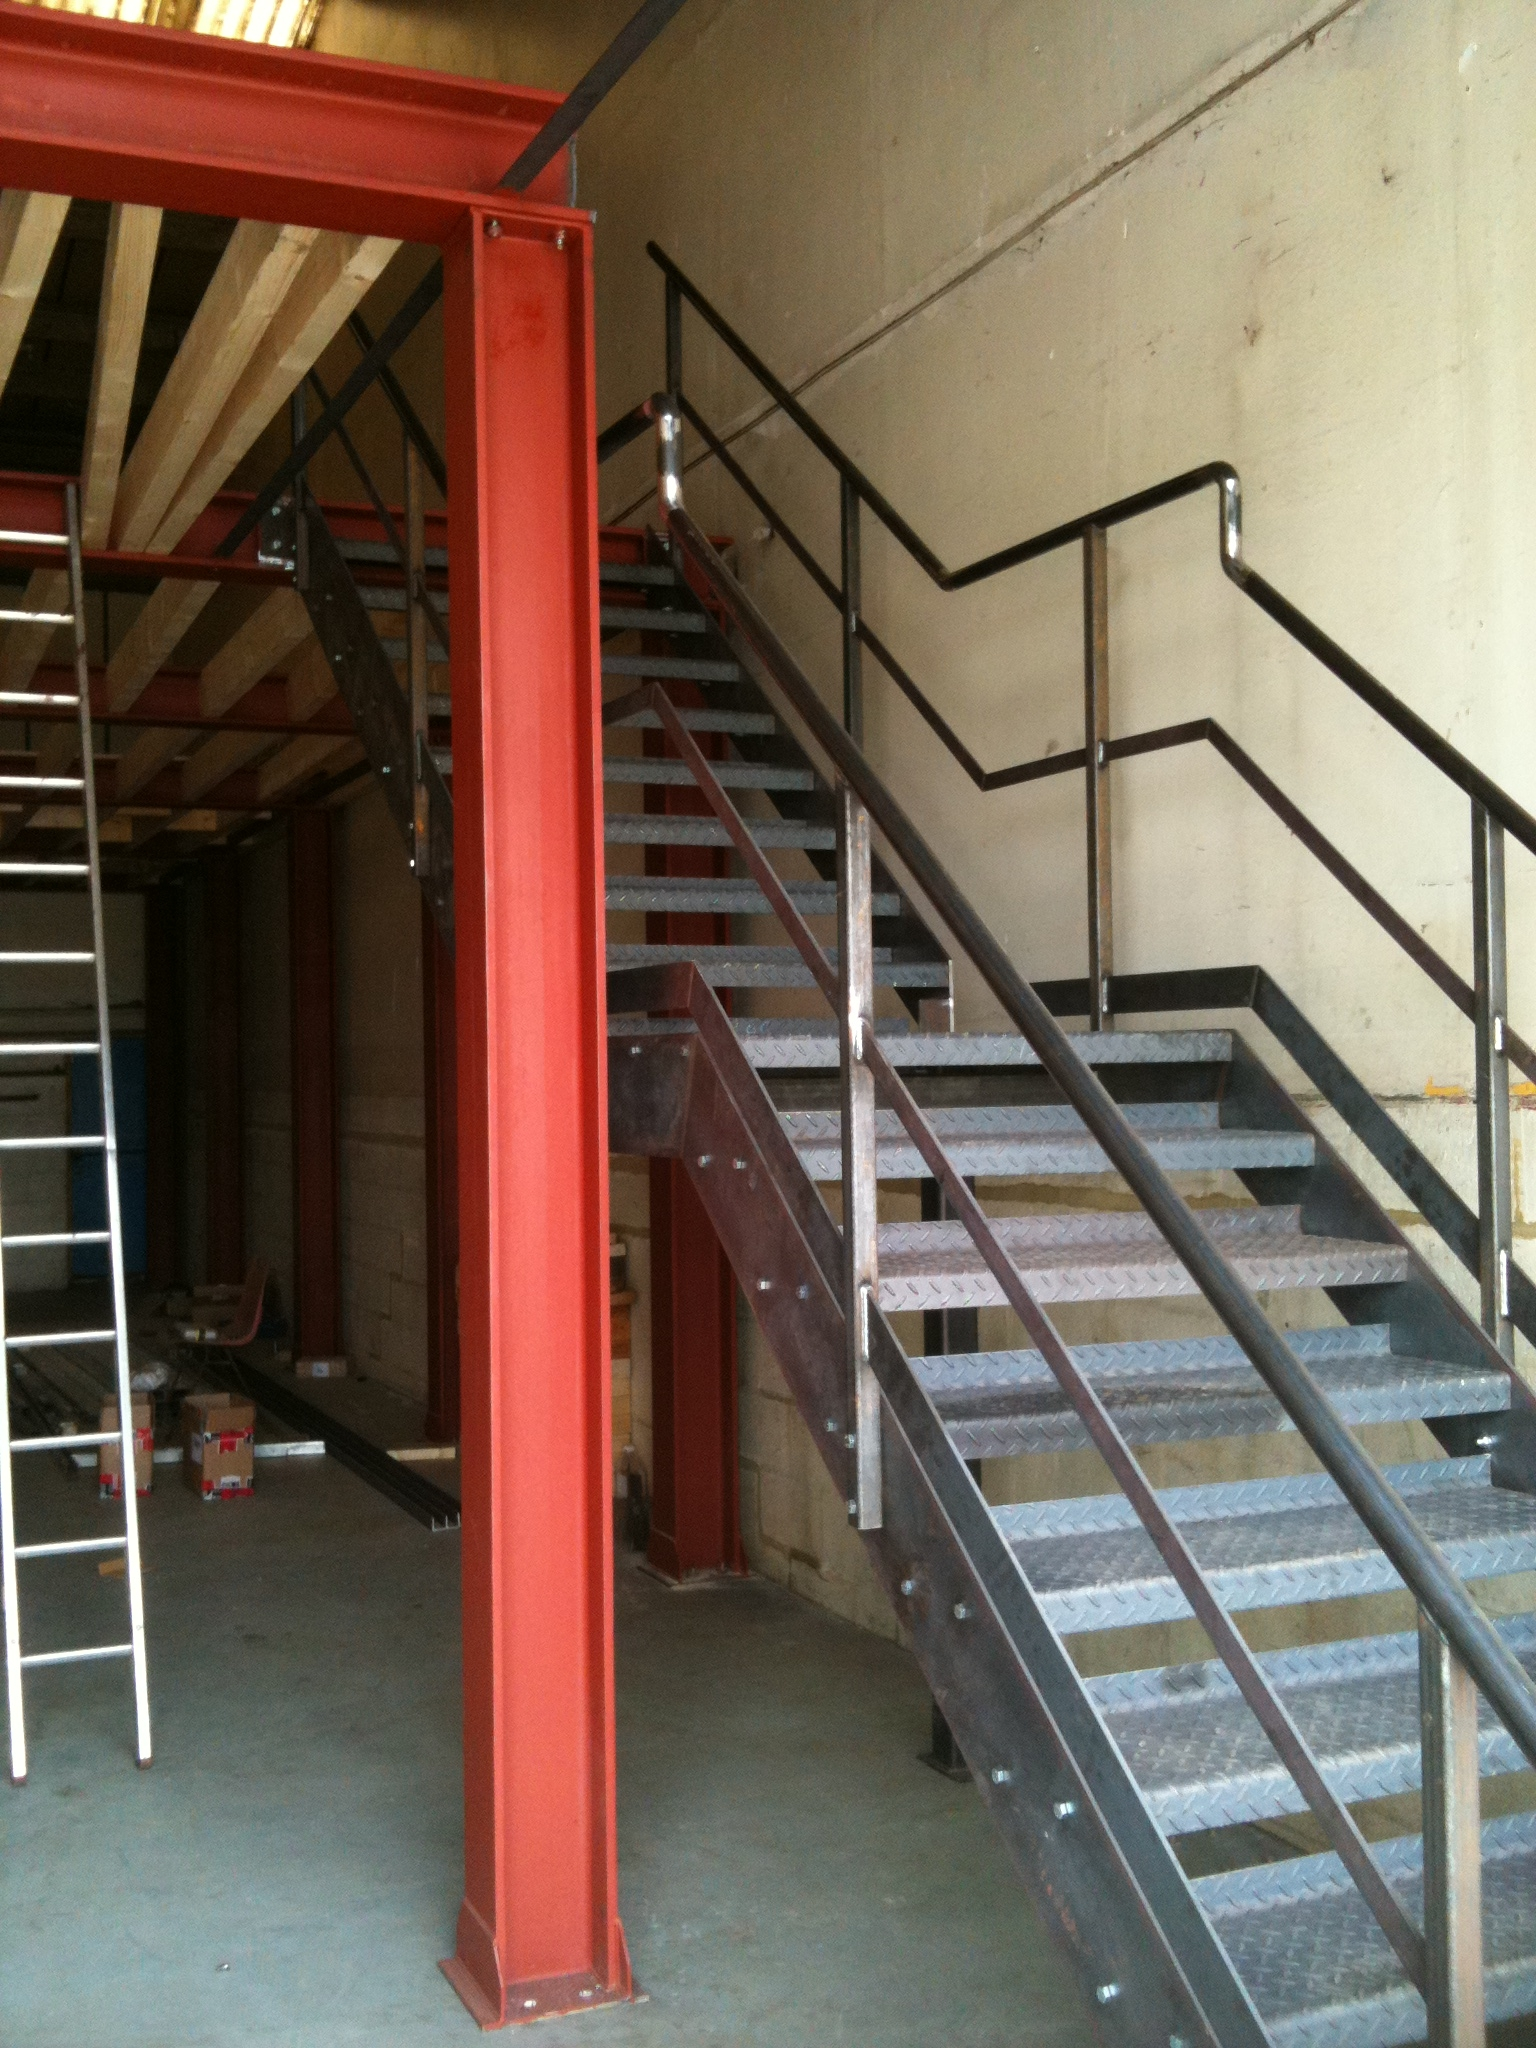 Internal Steel Staircase With Tubular Handrail And Column Support   Tubular Design For Stairs   Stainless Steel   Fully Covered Balcony Grill   Fabrication   Simple   Industrial